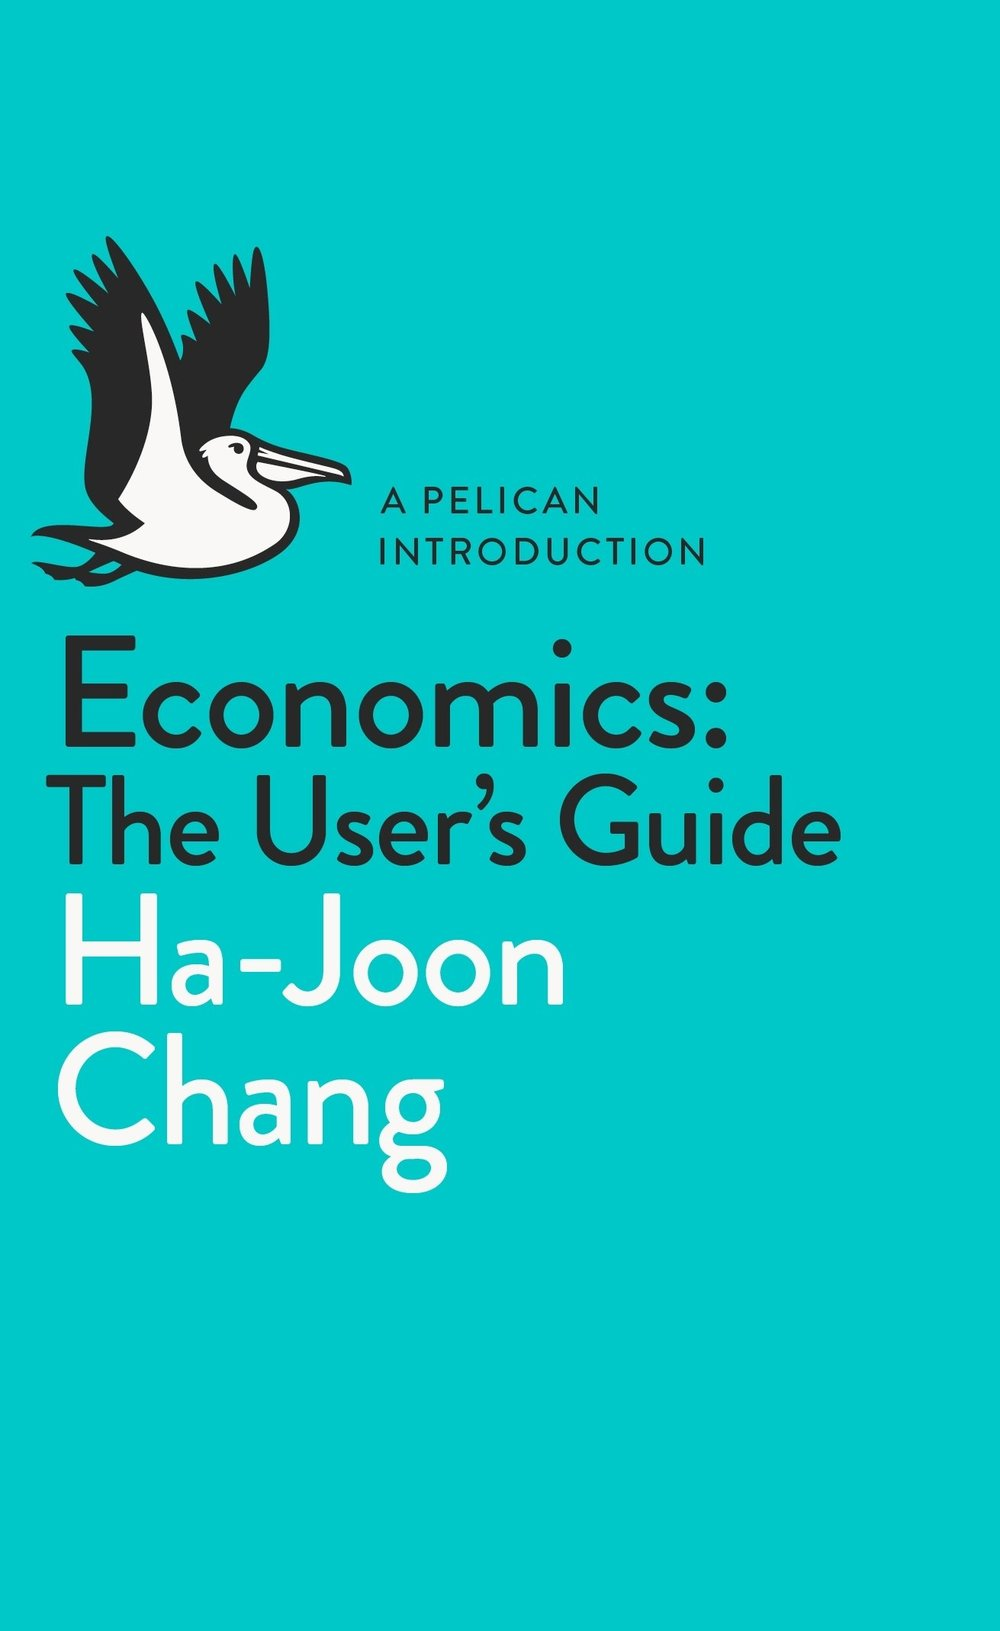 Ha-Joon Chang gives an overview of the various schools of thought in economics, and shows why many of them still provide great insights. Click for pdf.